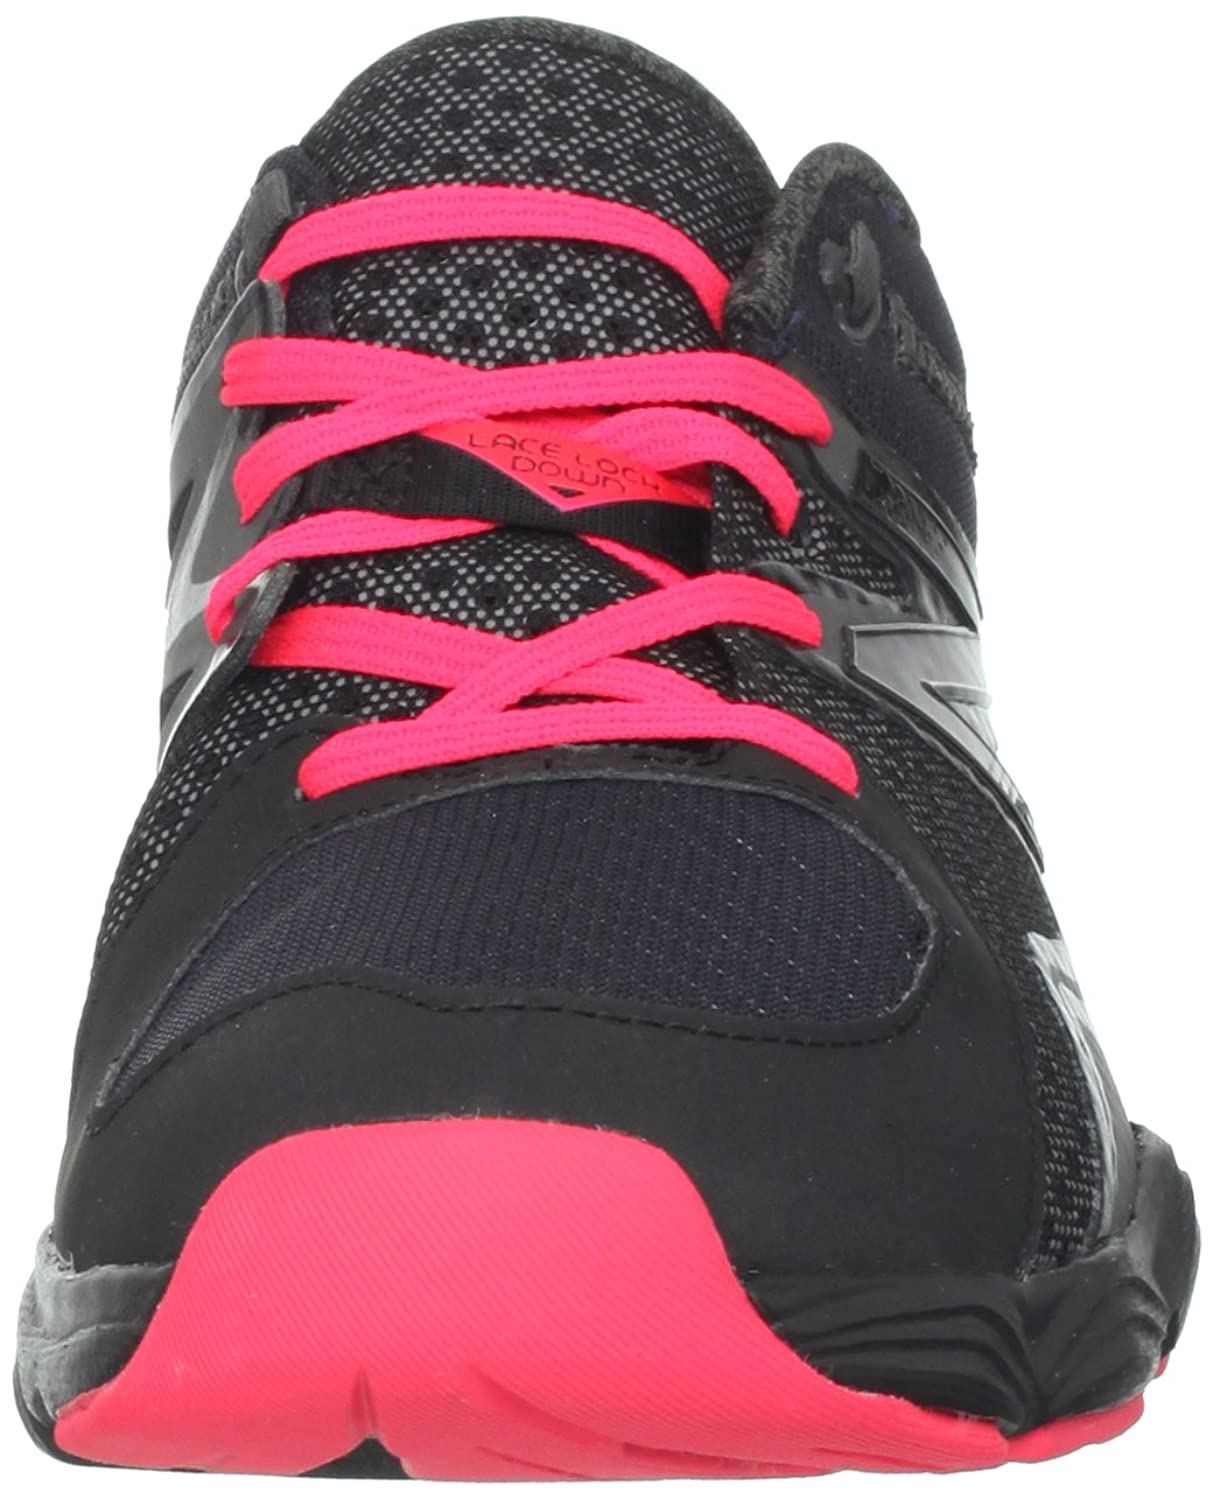 Buy Womens Running Shoes Online